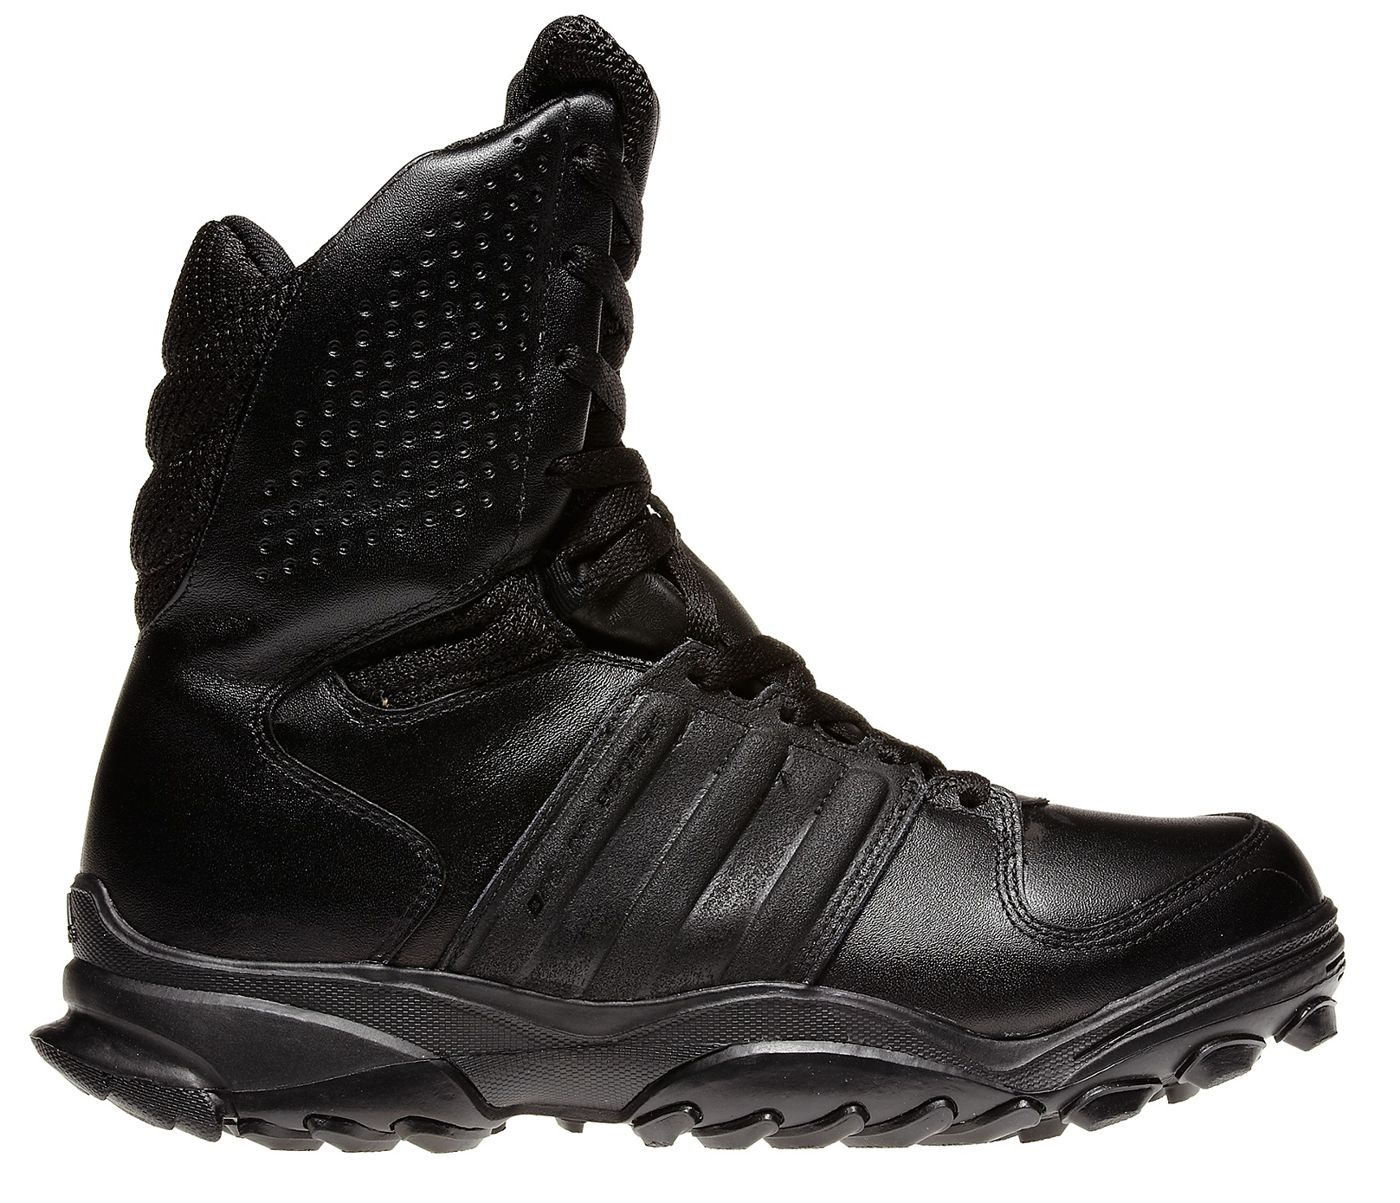 buy online 18bb1 2fca6 Details about Adidas GSG9.2 Tactical Boots